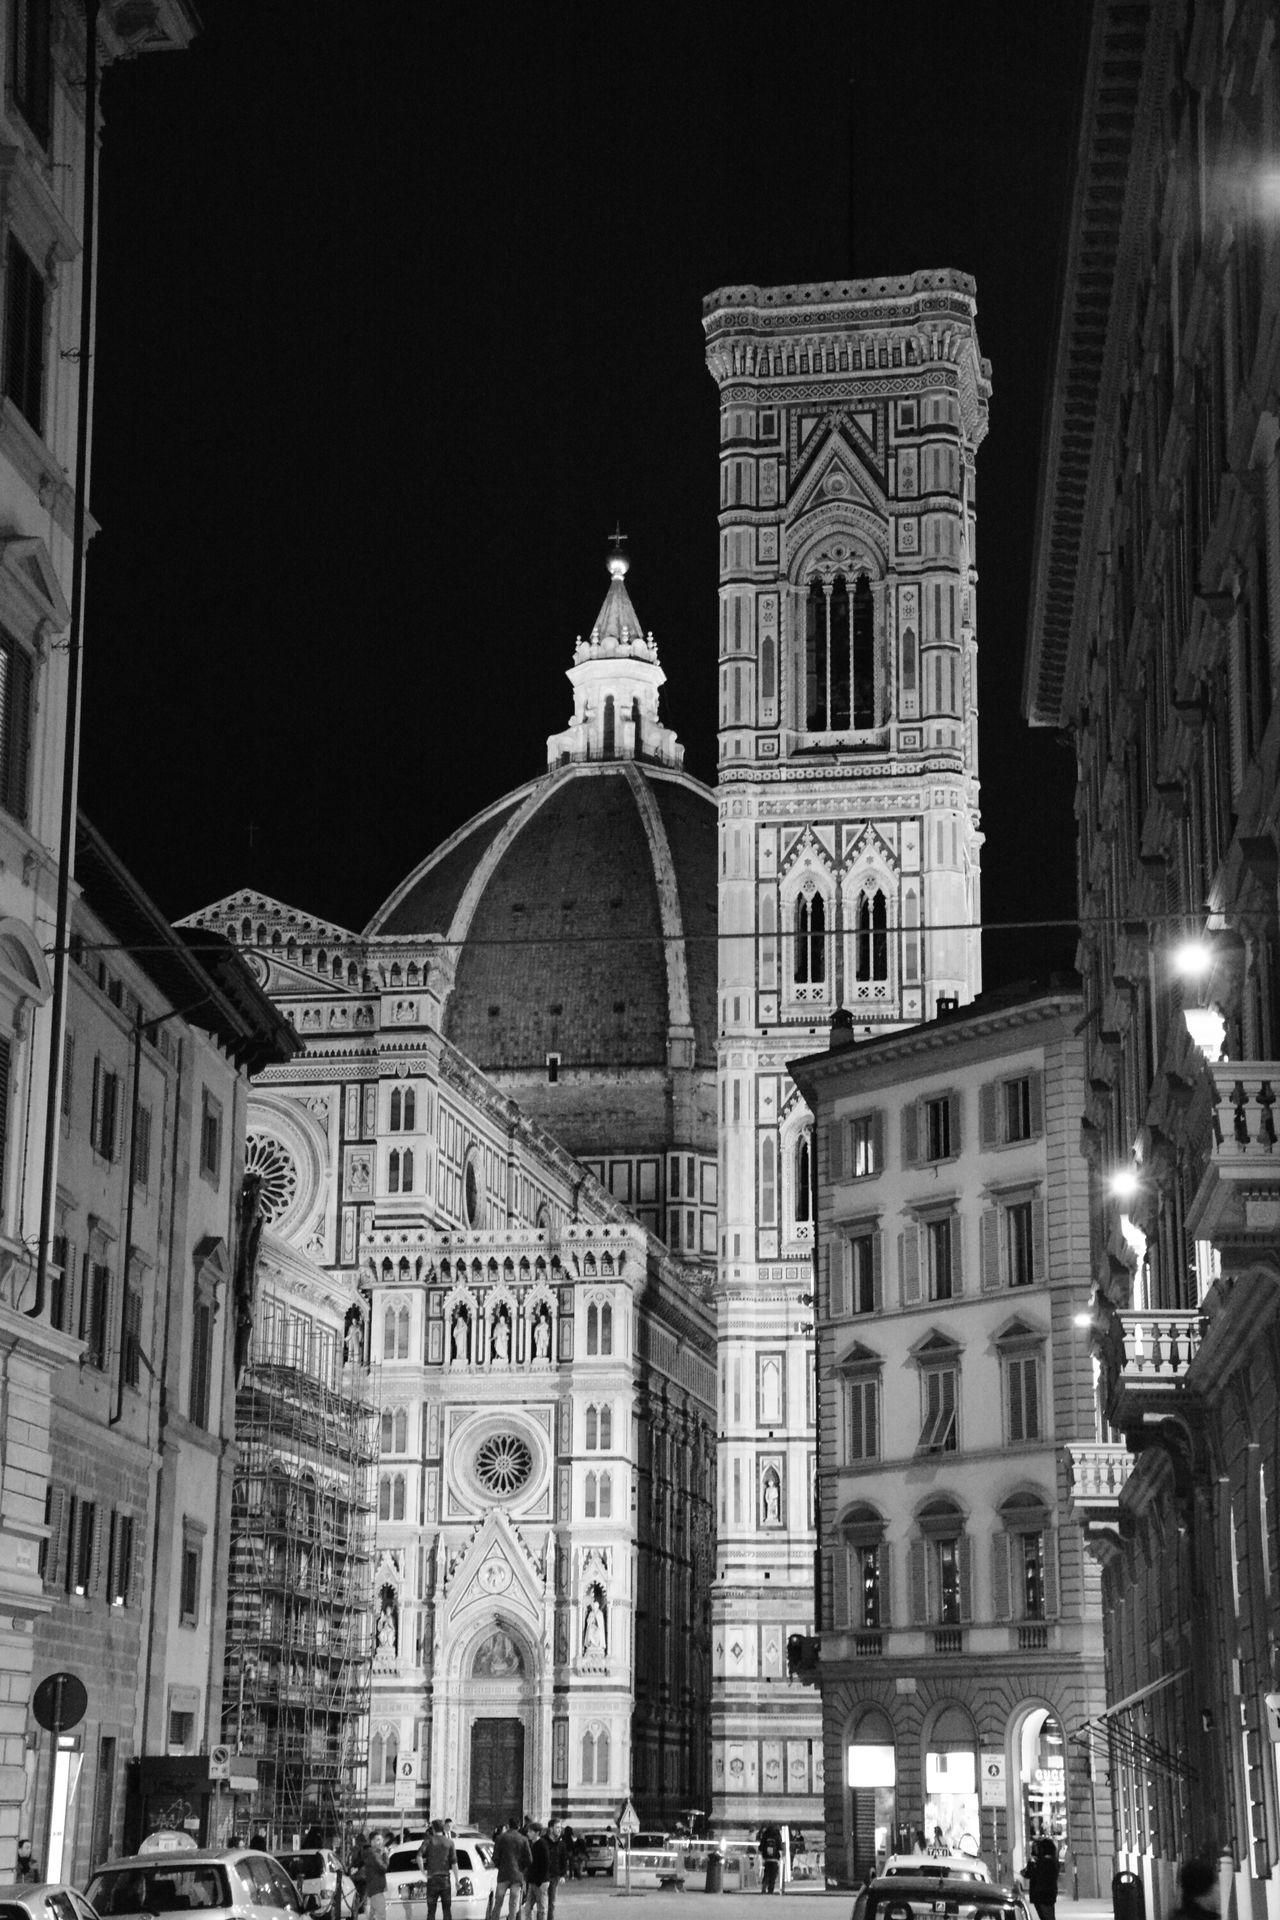 Cattedrale S. Maria del Fiore - Firenze b&w Nikon Architecture Cattedrale Di Santa Maria Del Fiore Cattedral Duomo Di Firenze Firenzebynight Firenzemadeintuscany Ti Racconto Firenze Monochrome Night B&w Photography NikonD5200 Eyeemphotography NikonLife The White Collection Black And WhiteBlack And White Collection  Nikonphotographer D5200 Black And White After Dark Cattedraledisantamariadelfiore CA Cities At Night Traveling Home For The Holidays The Architect - 2017 EyeEm Awards The Street Photographer - 2017 EyeEm Awards